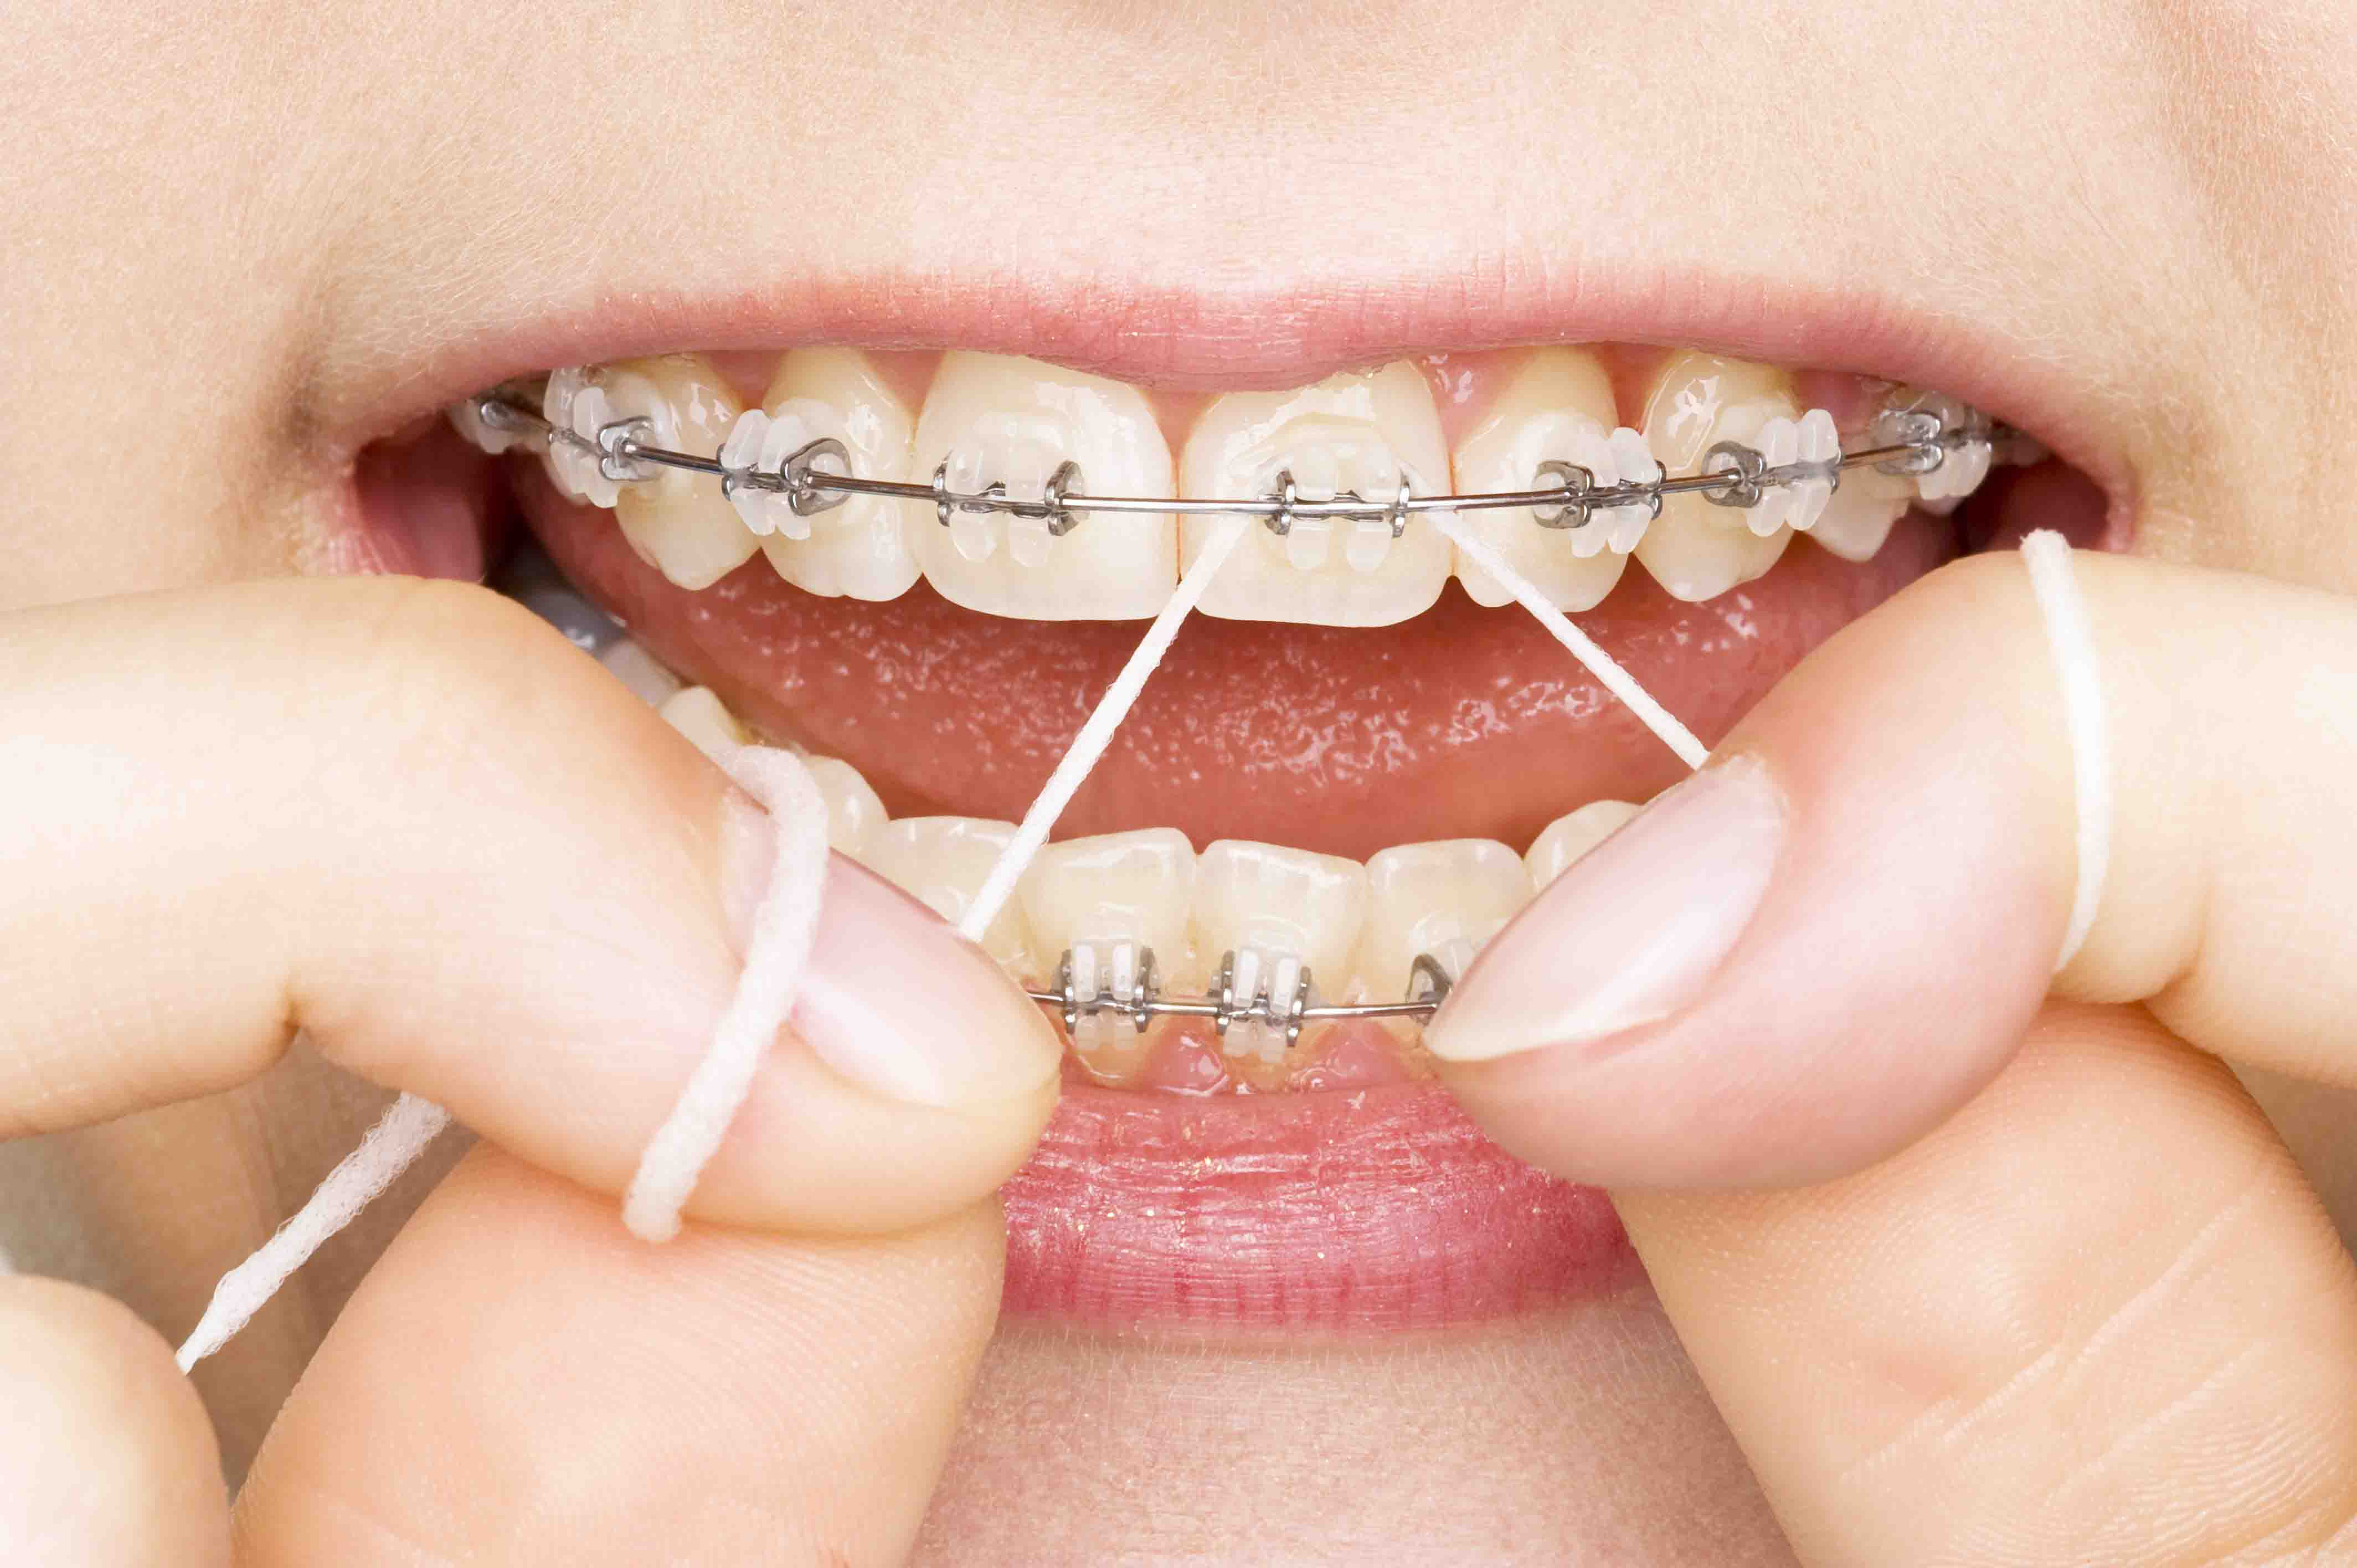 Cosmetic Dental Treatment - What Makes it Safest And Best Dentistry Service?